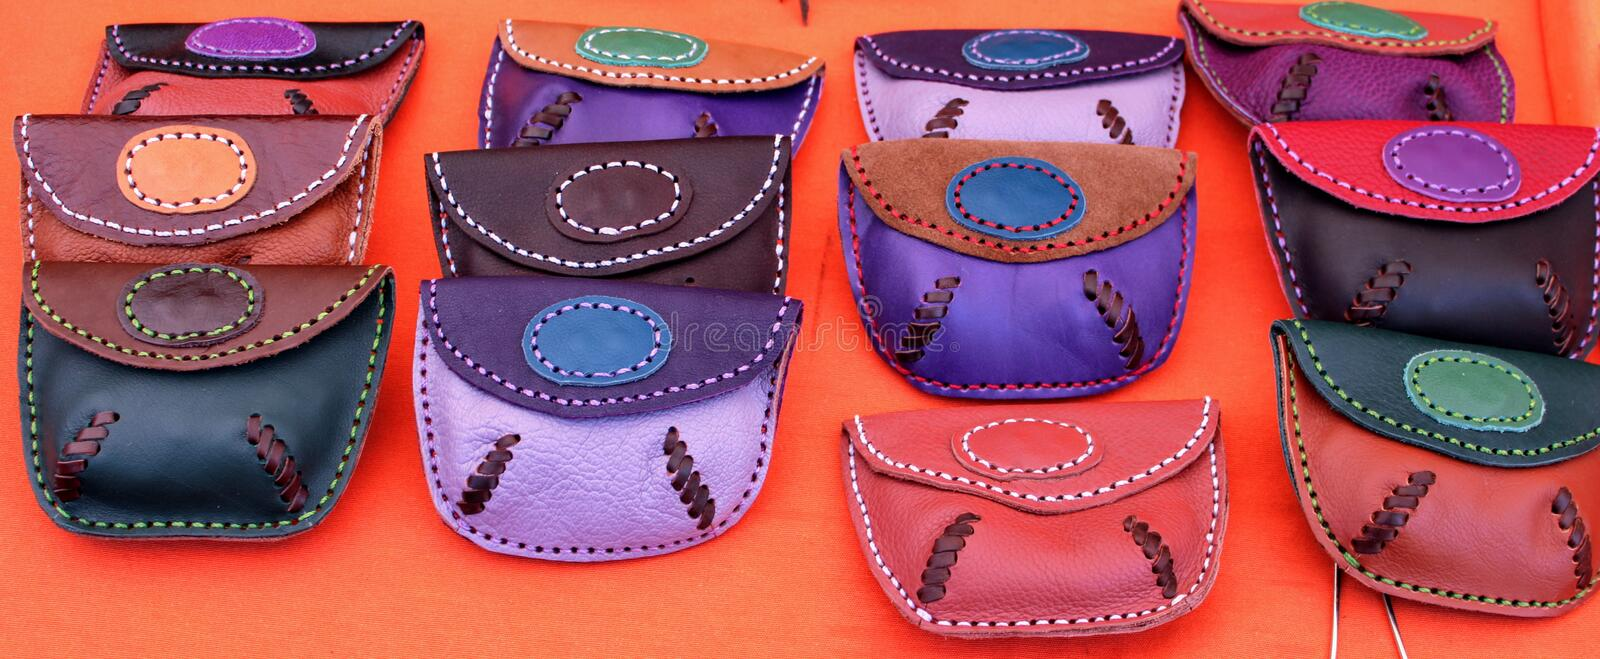 Hand made leather purses stock photos